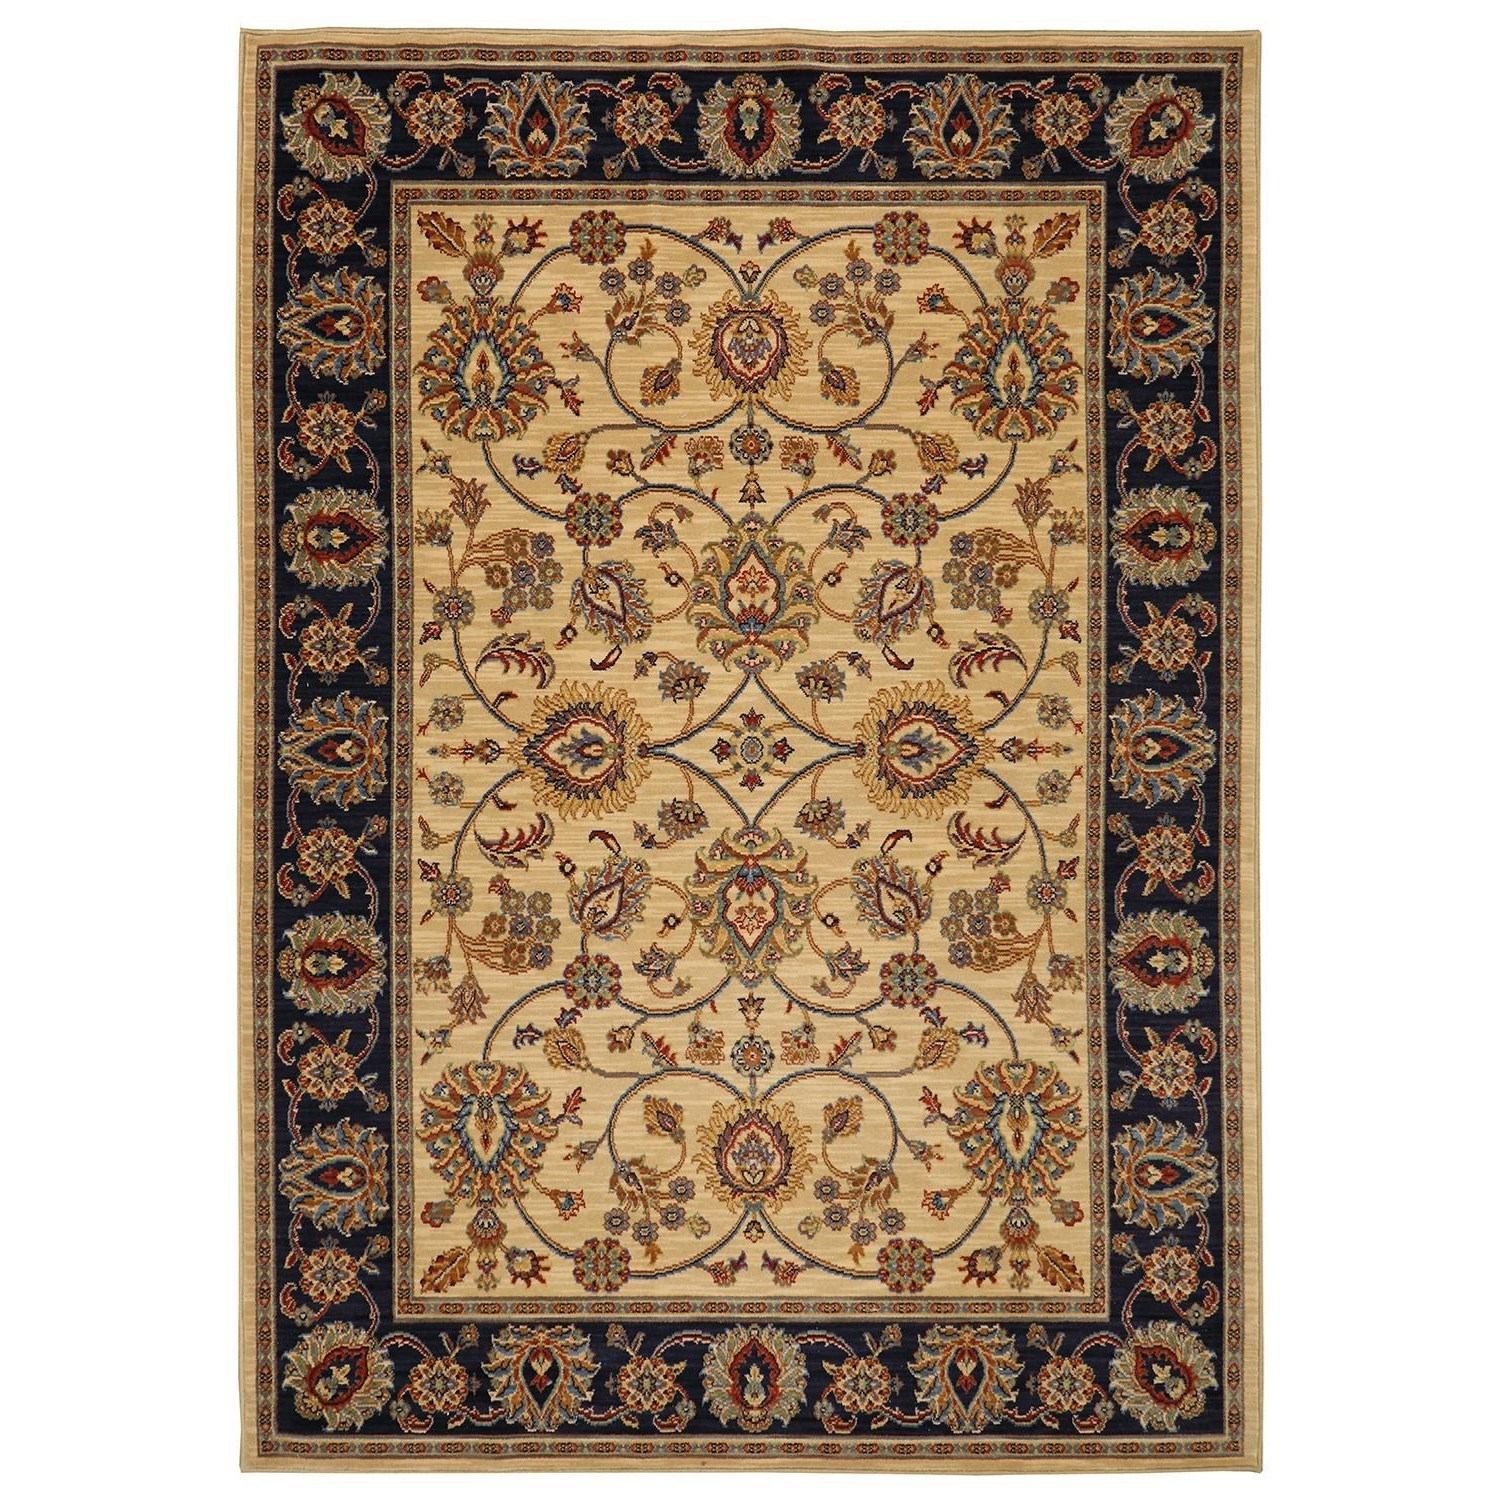 Karastan Rugs English Manor 9'2x13' Oxford Ivory Rug - Item Number: 02120 00604 110156